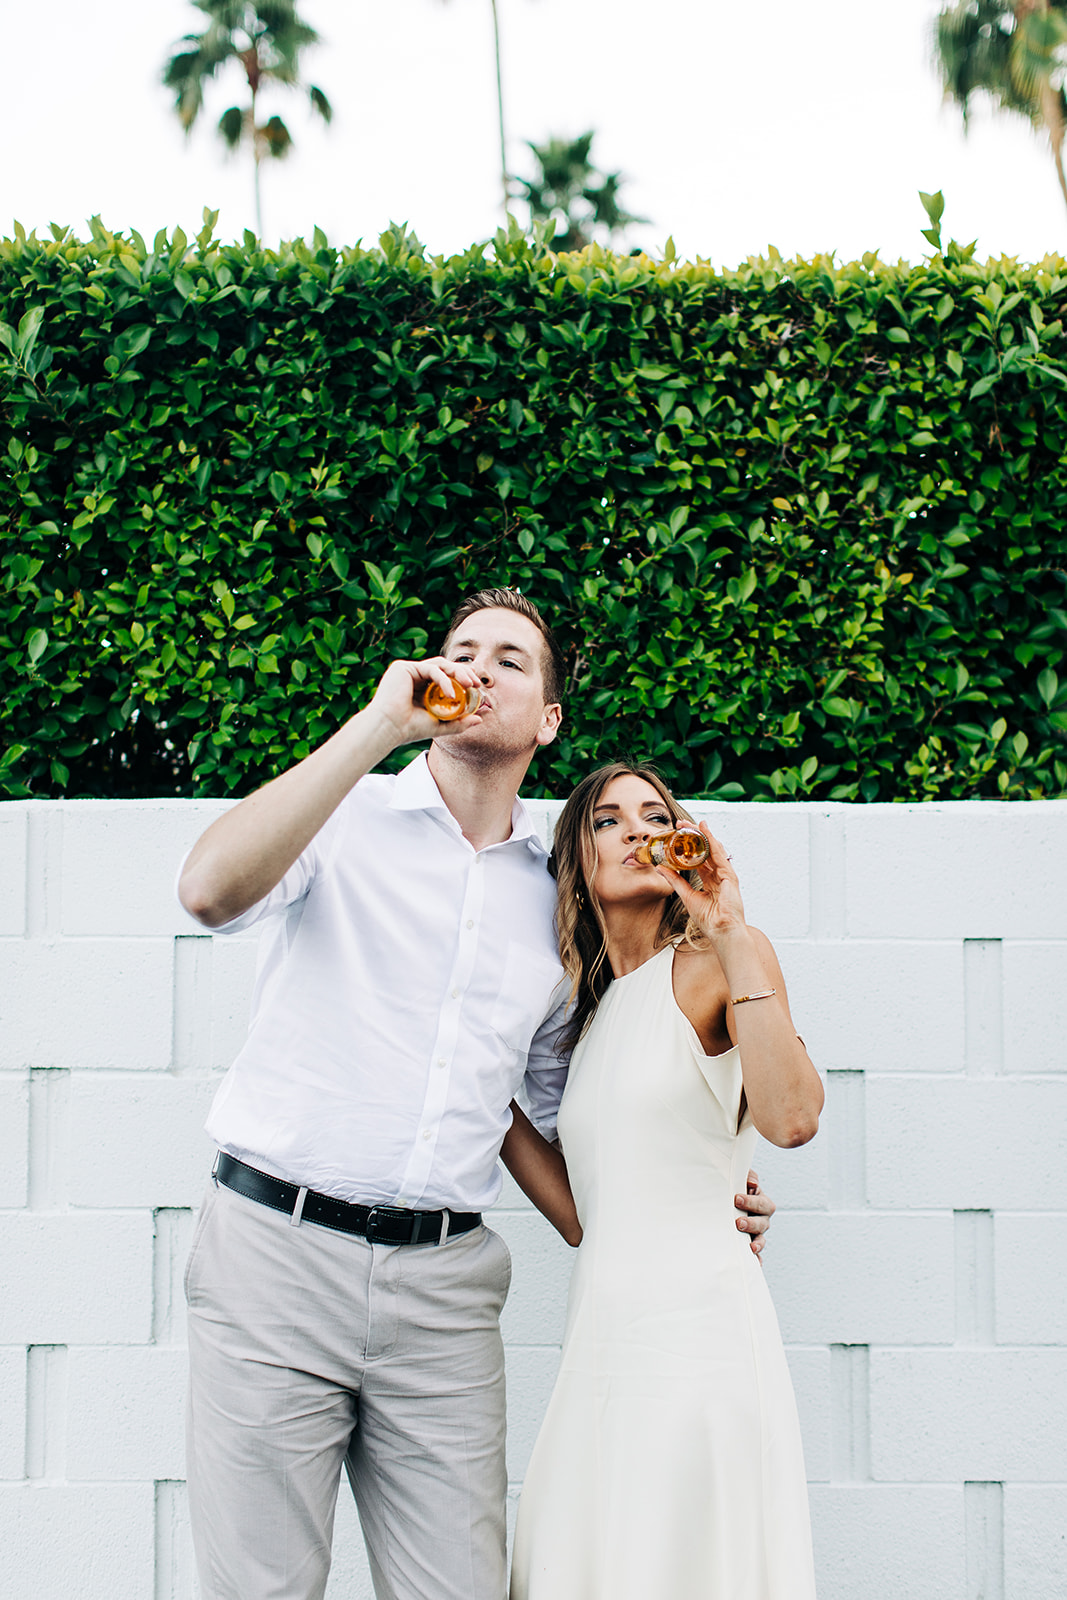 Paulina-Drew_Palm-Springs-Engagement-Photos_Clarisse-Rae_Southern-California-Wedding-Photographer-14